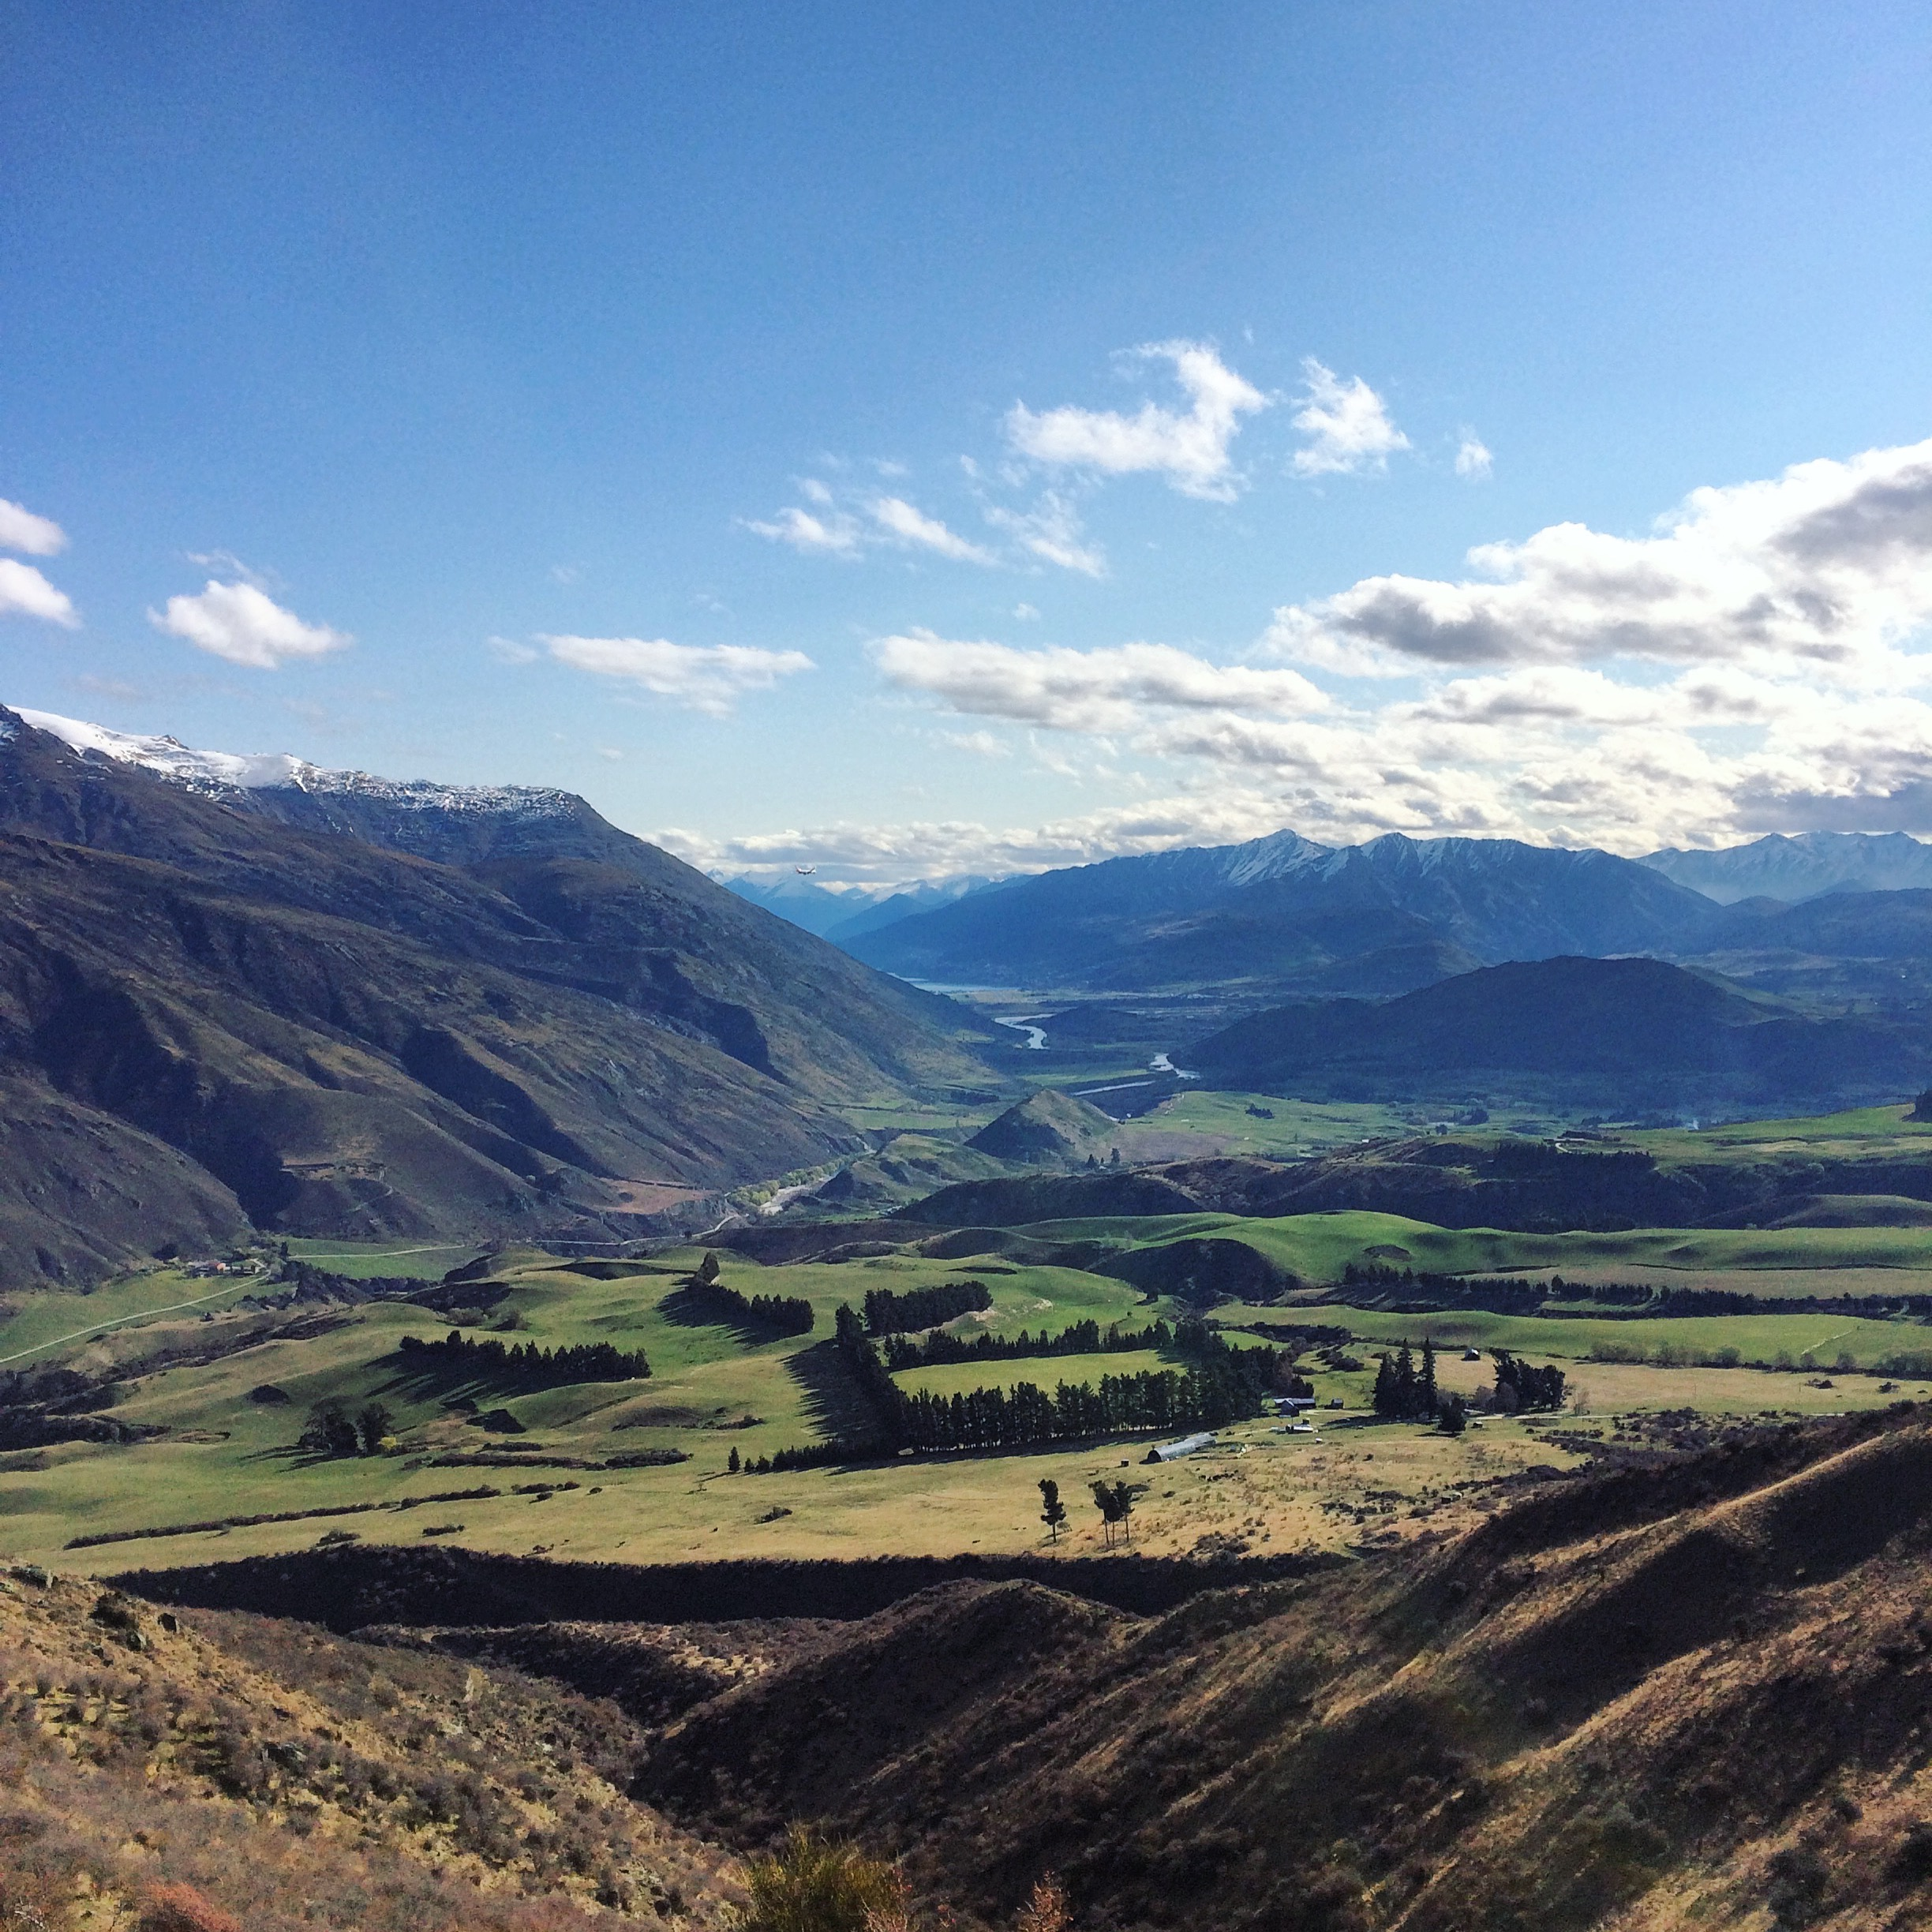 Coming Down Into Queenstown on the Crown Rd